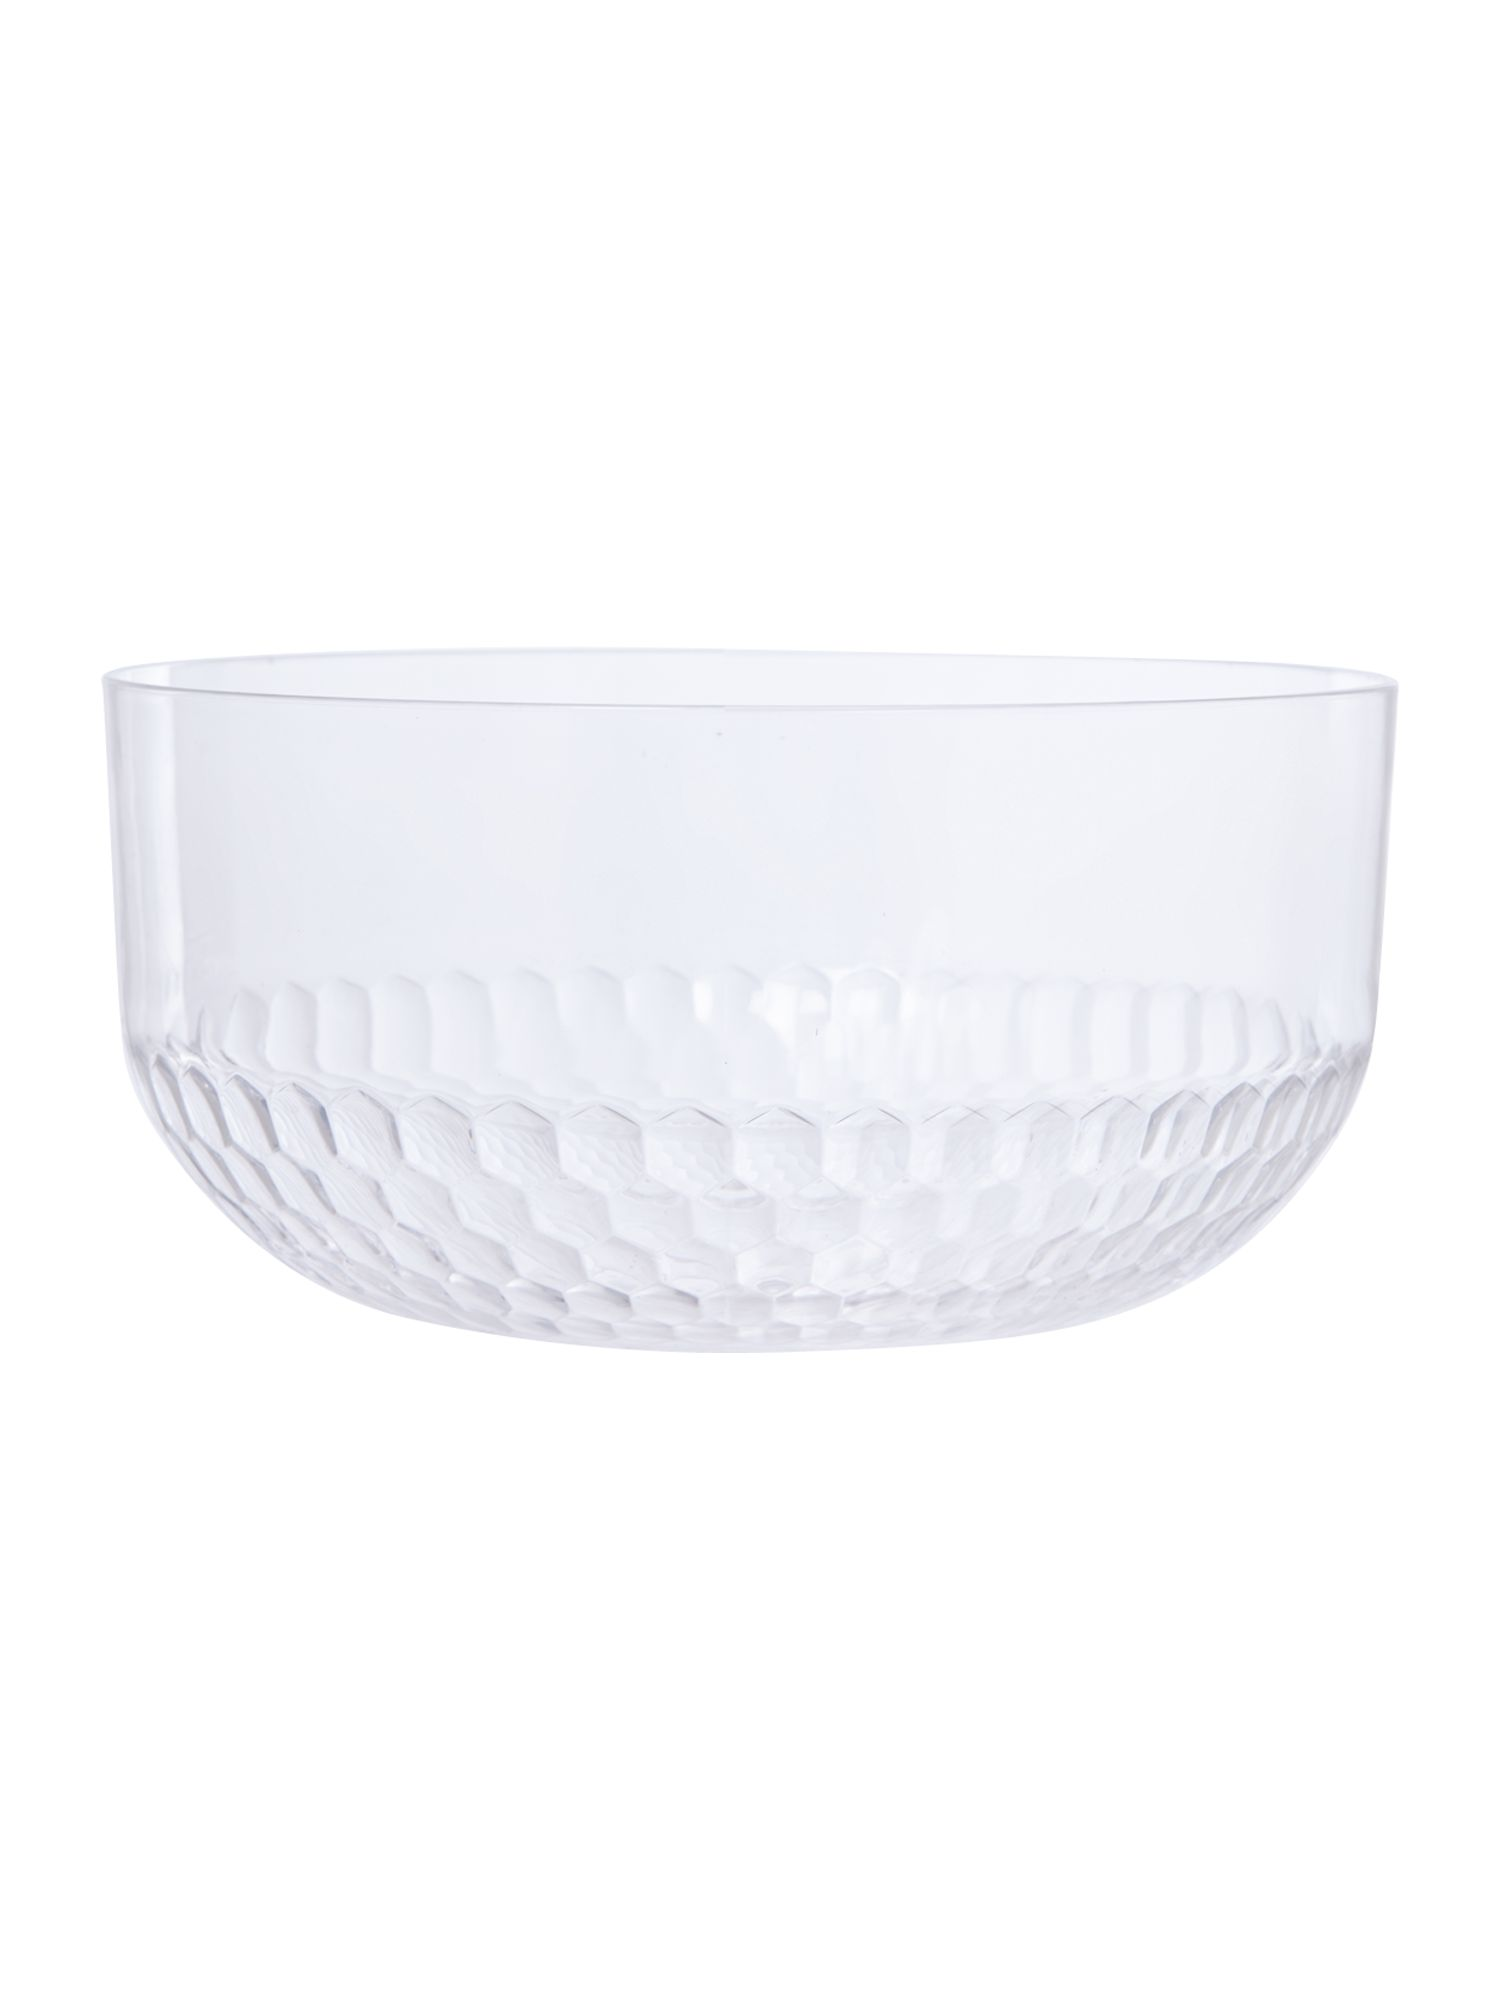 Honeycomb acrylic salad bowl